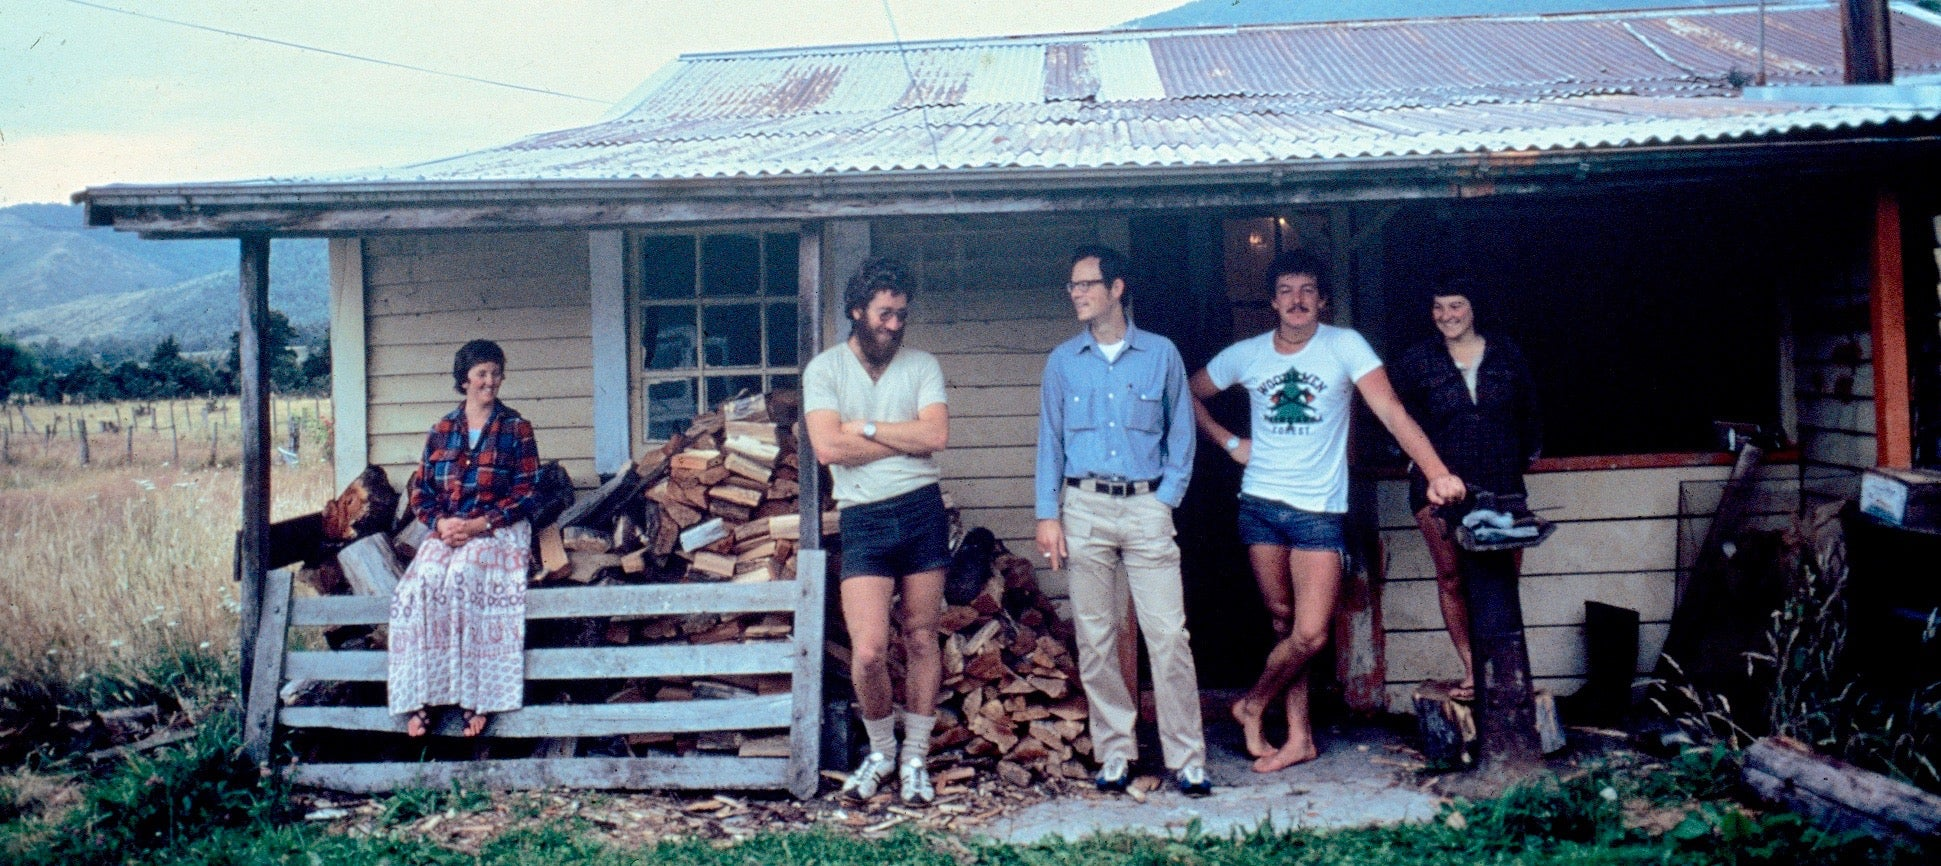 Group standing on front porch of old house in New Zealand